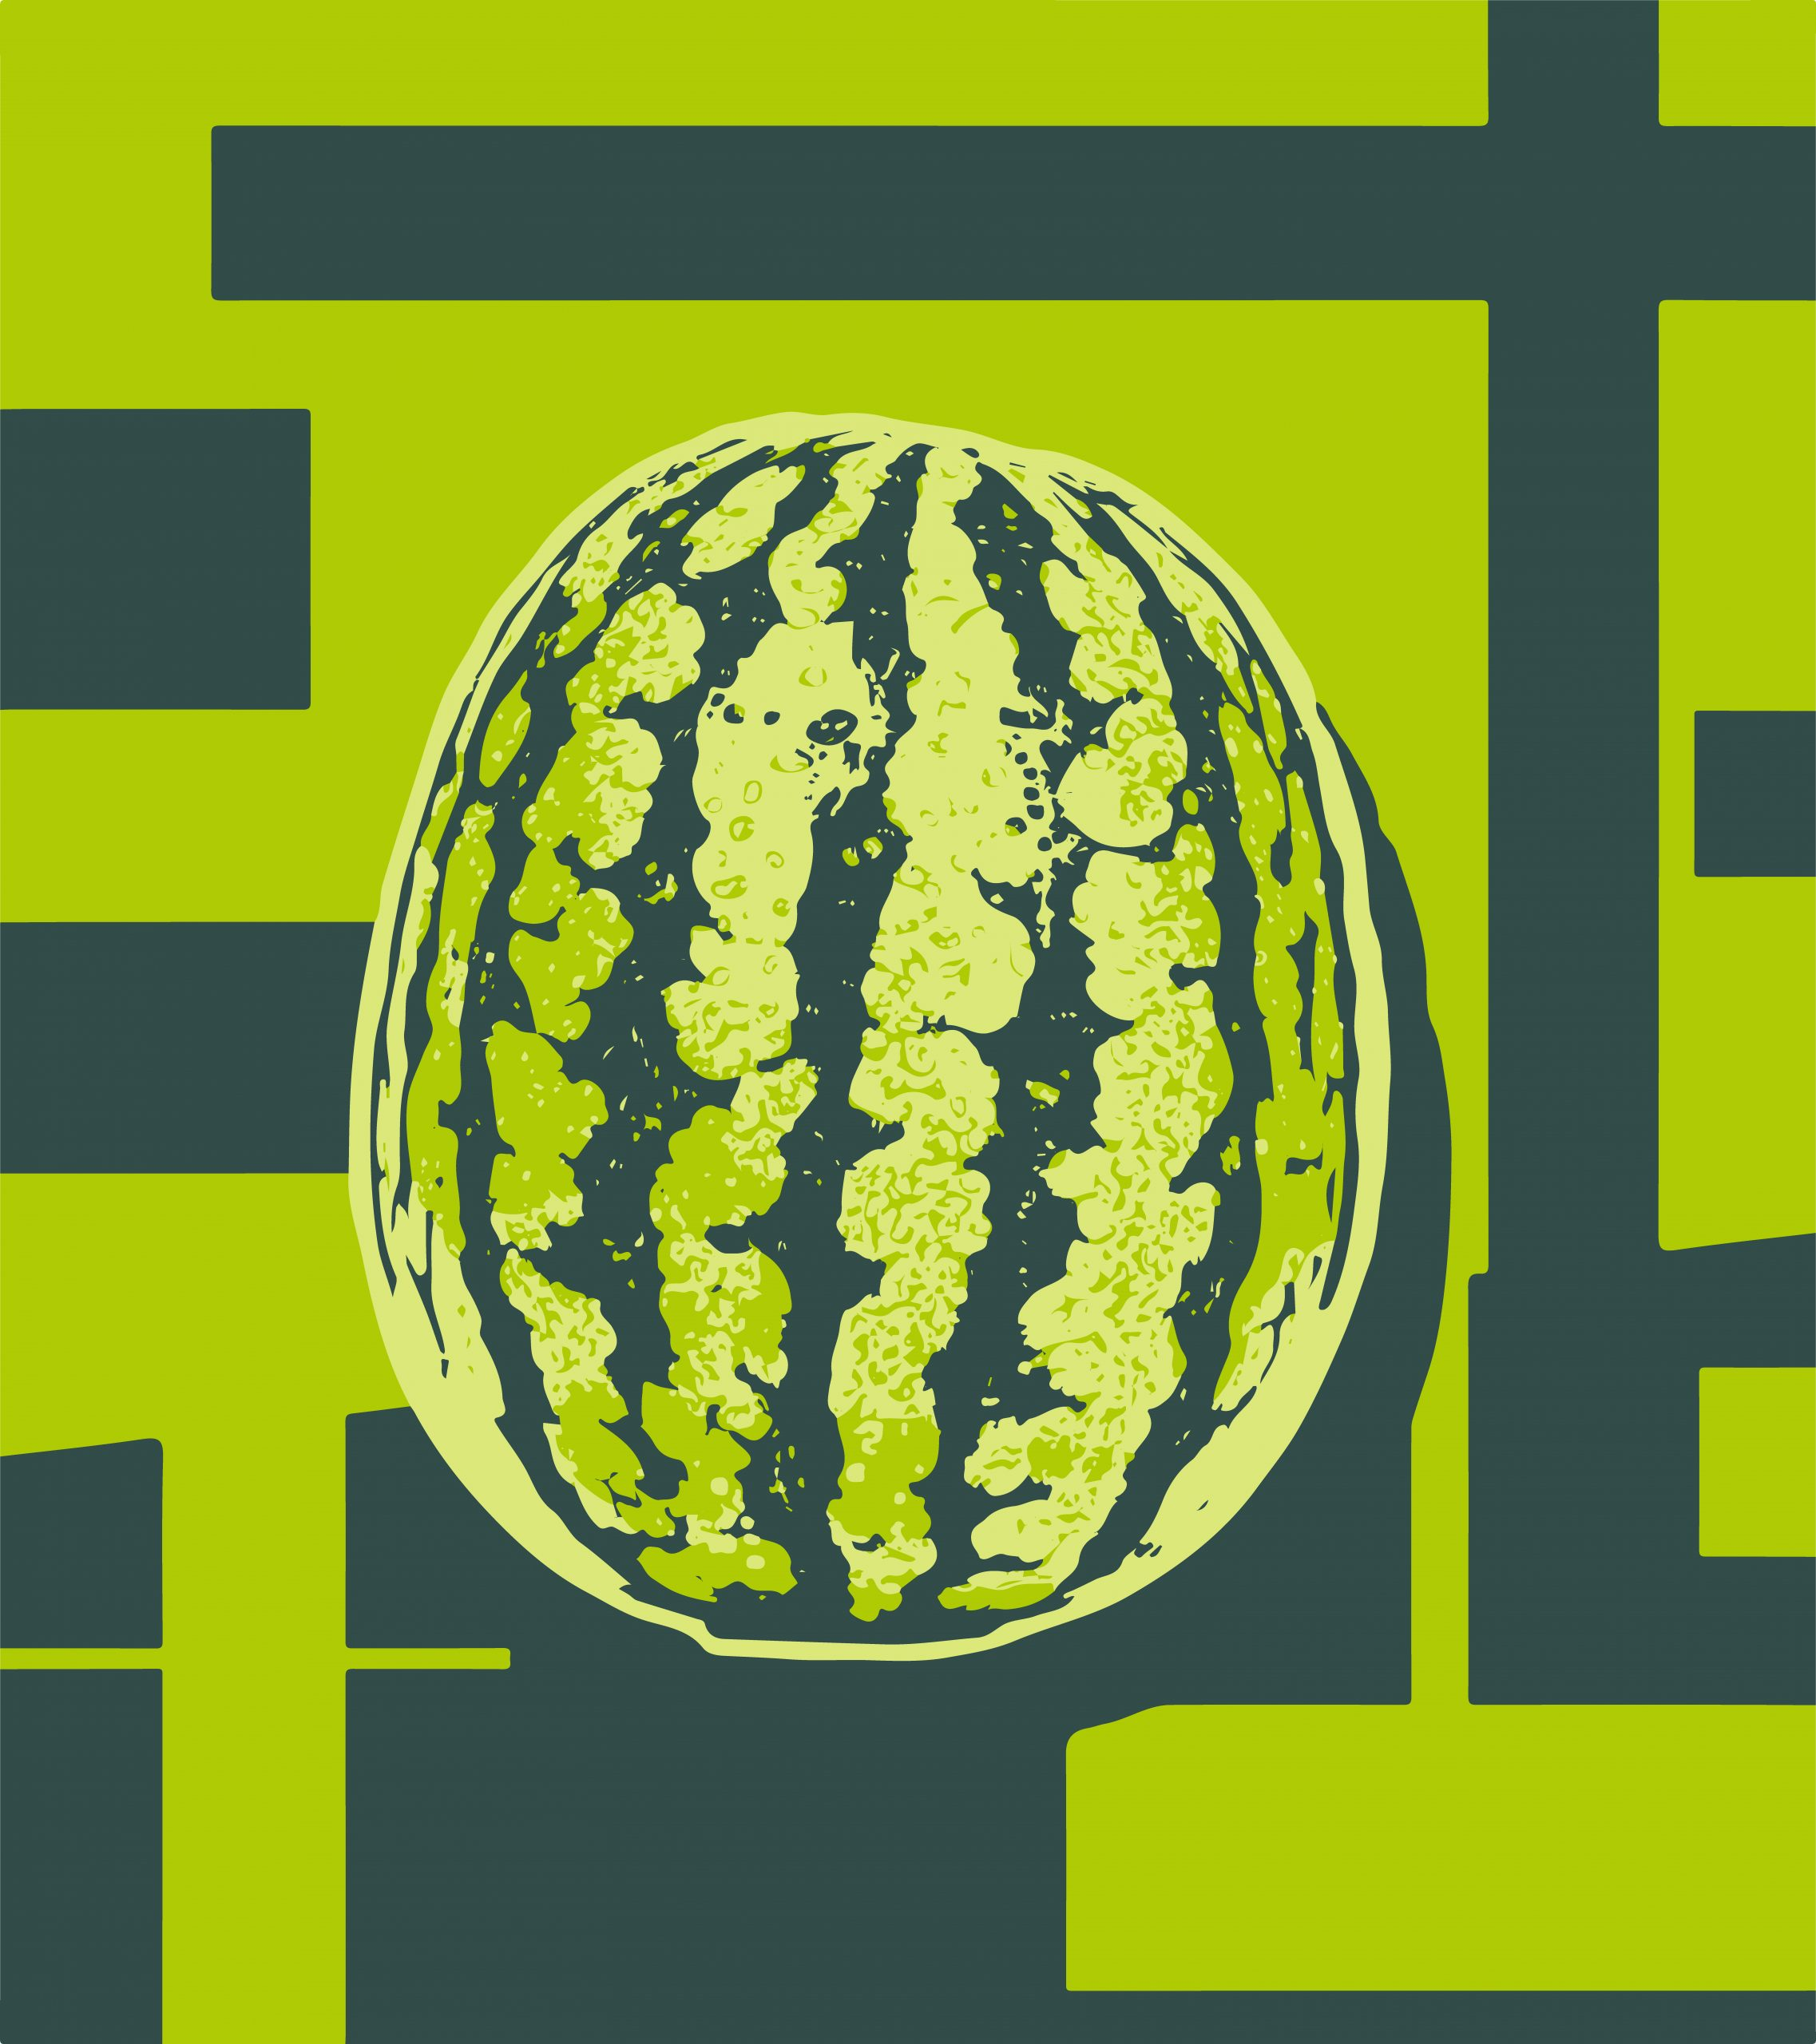 Illustration of a watermelon